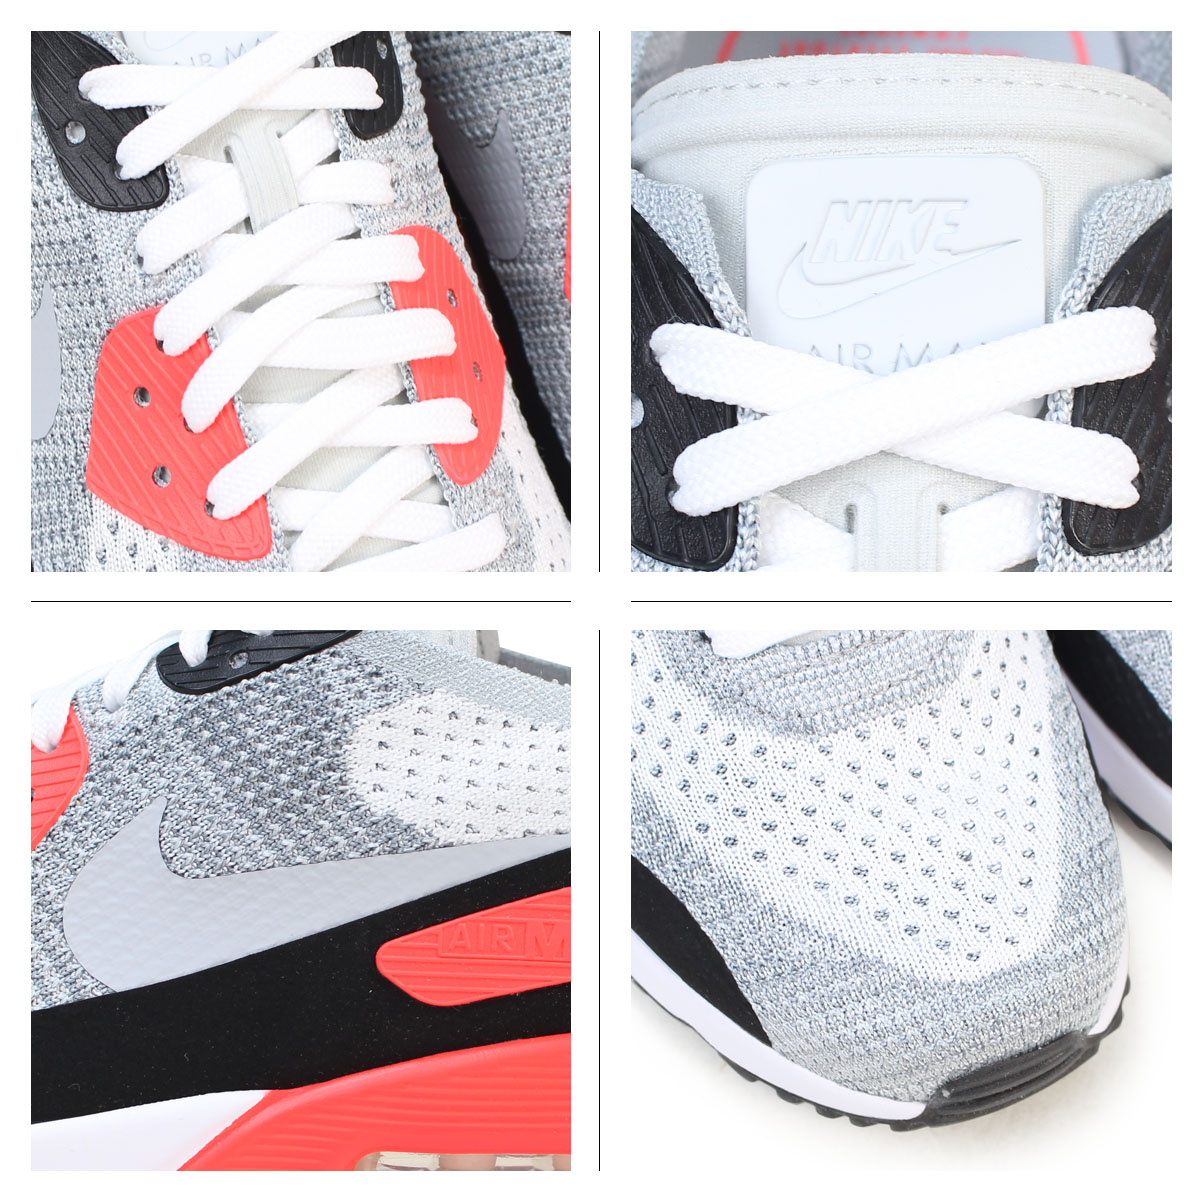 NIKE AIR MAX 90 ULTRA 2.0 FLYKNIT Kie Ney AMAX 90 ultra men sneakers 875,943 100 shoes white